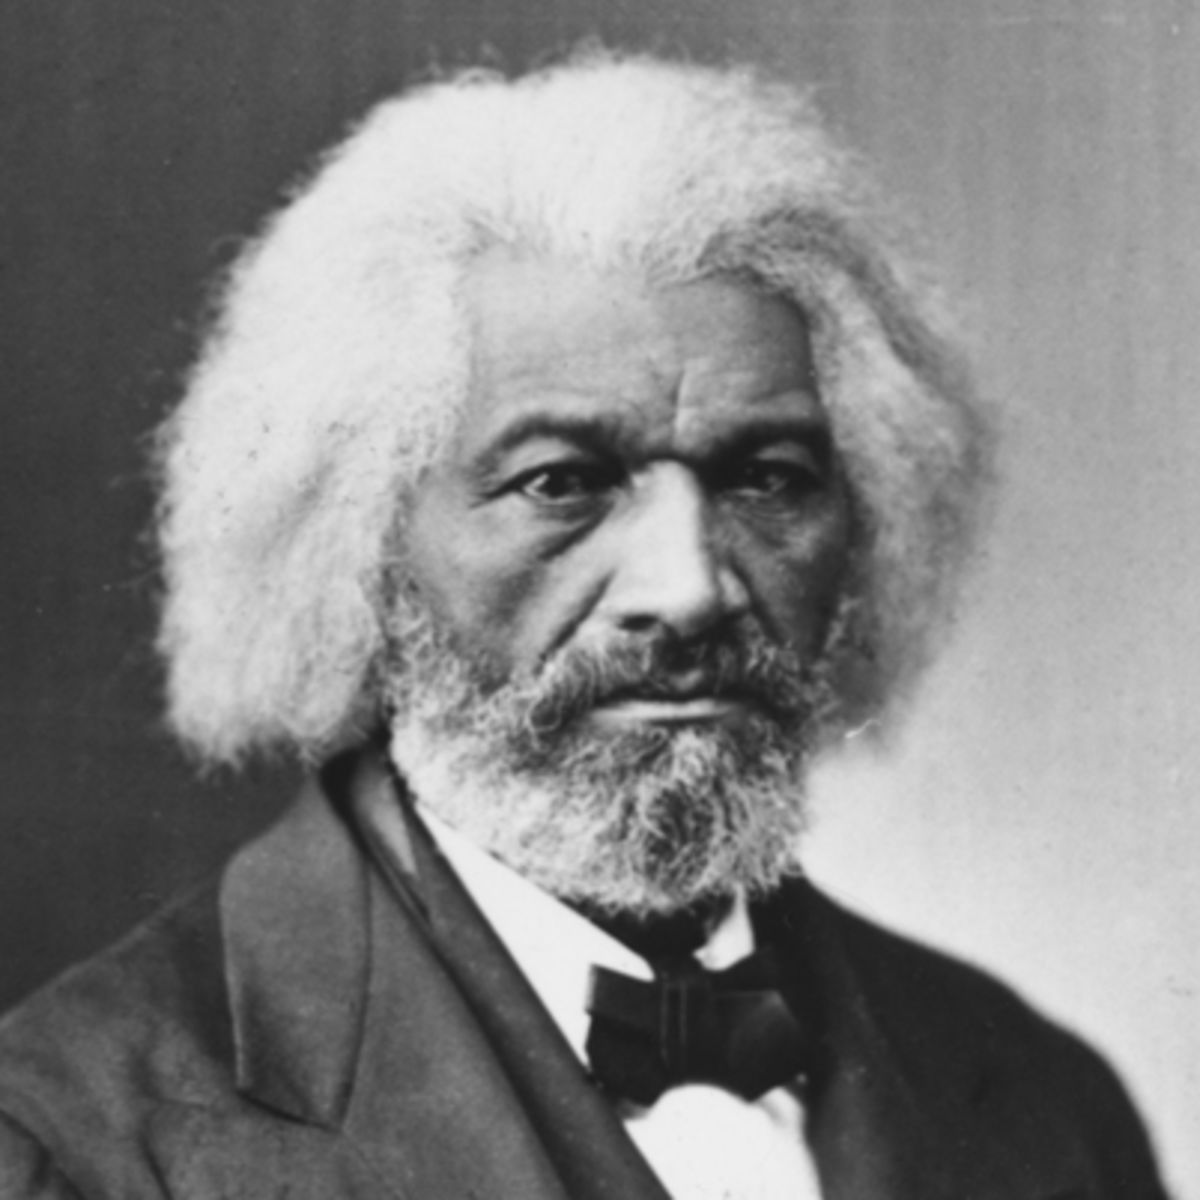 Douglass Learns of Abolitionist Movement